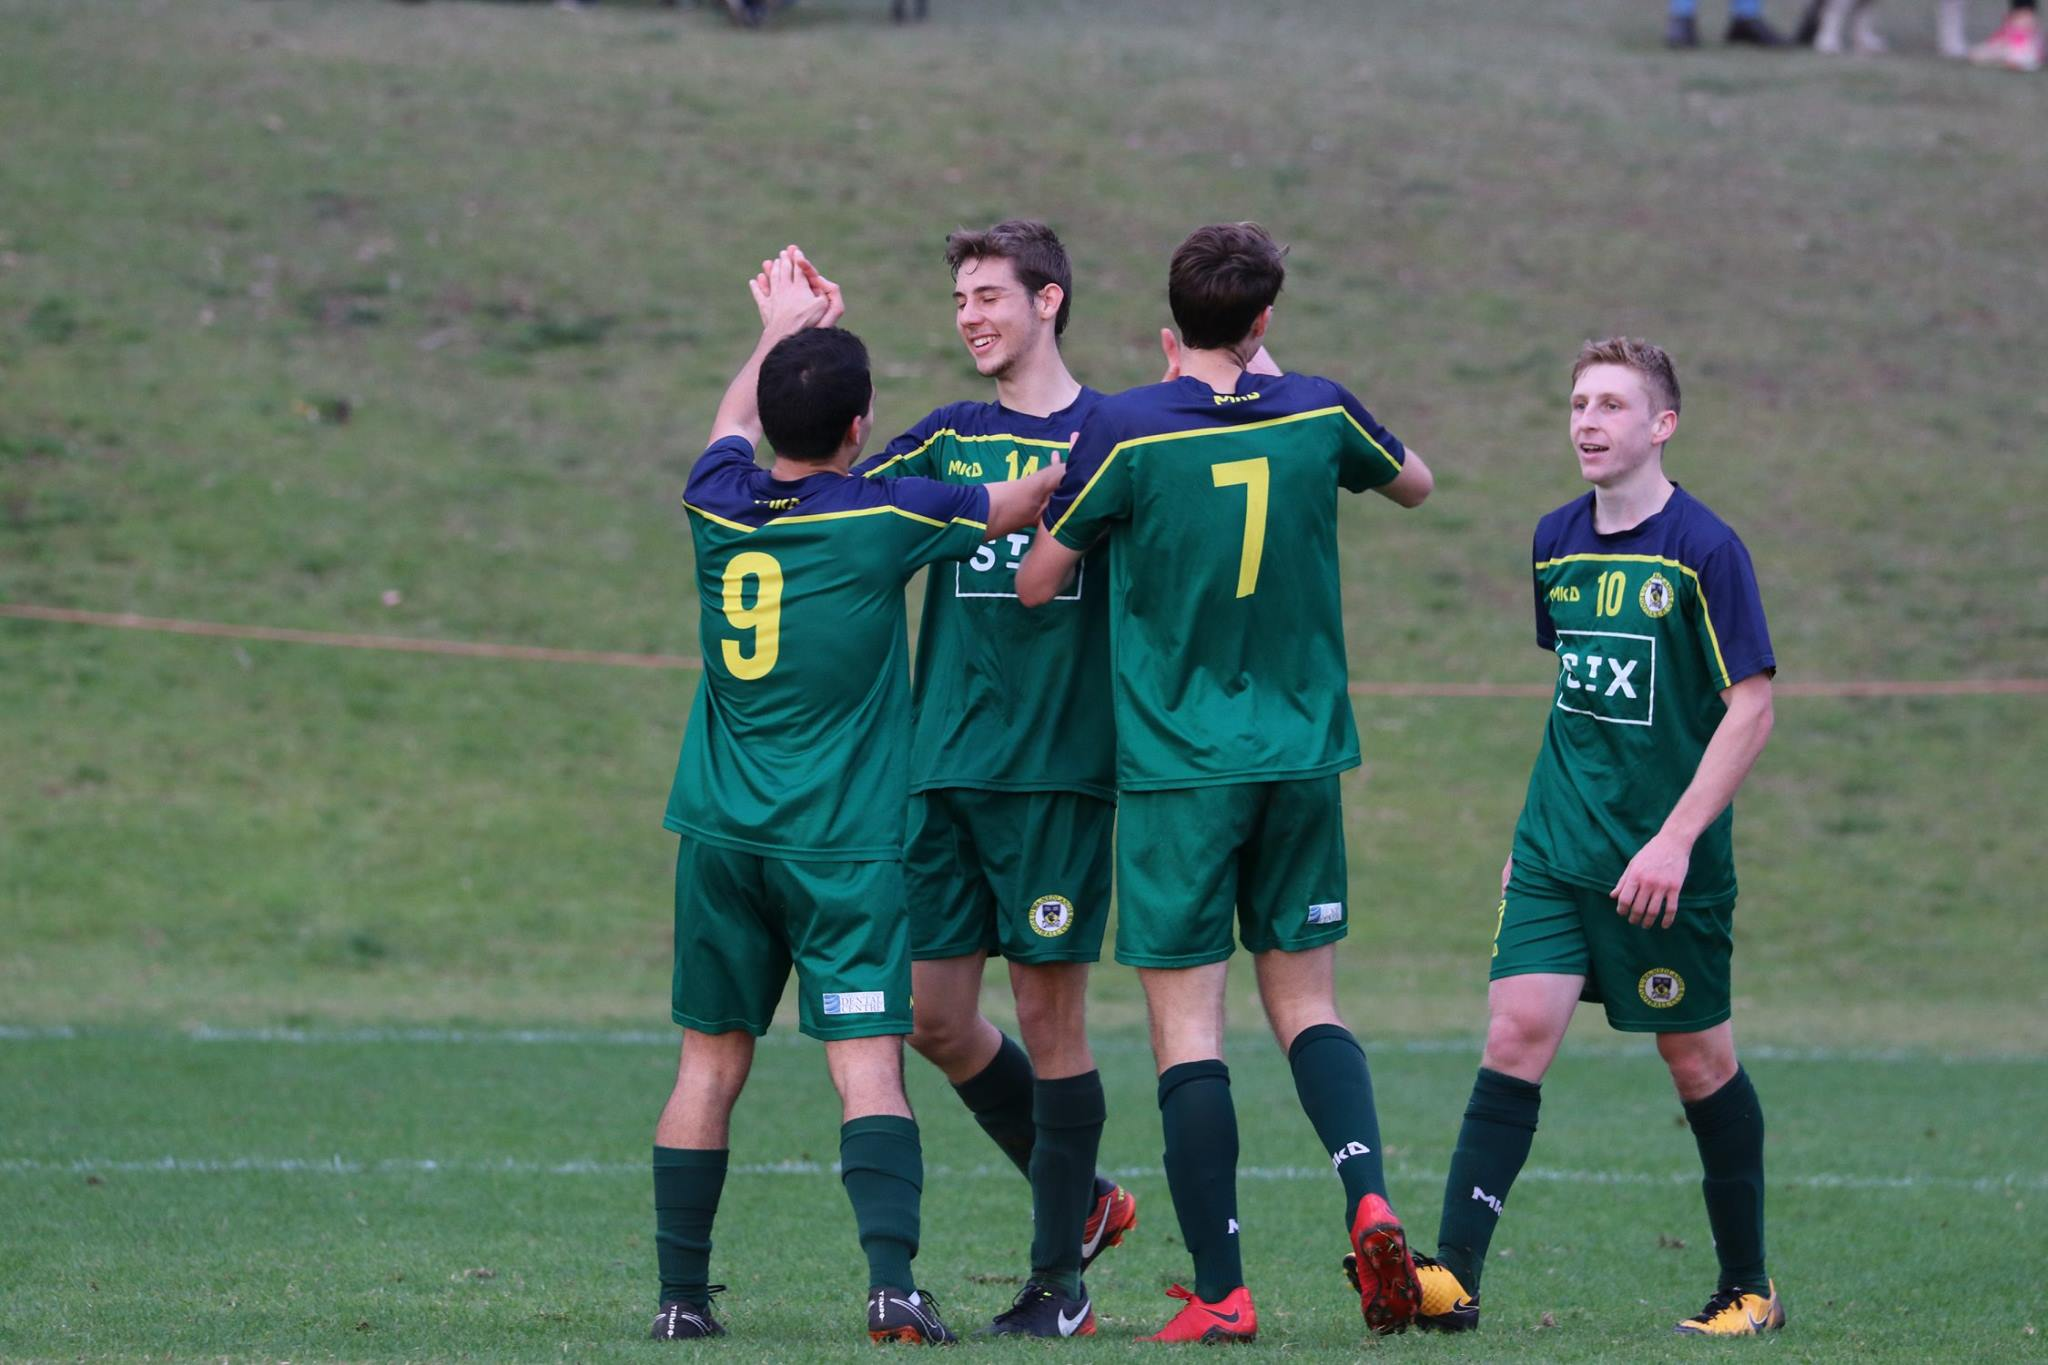 THE BOYS CELEBRATE THEIR SECOND OF THE DAY - CREDIT: GABRIELE MALUGA